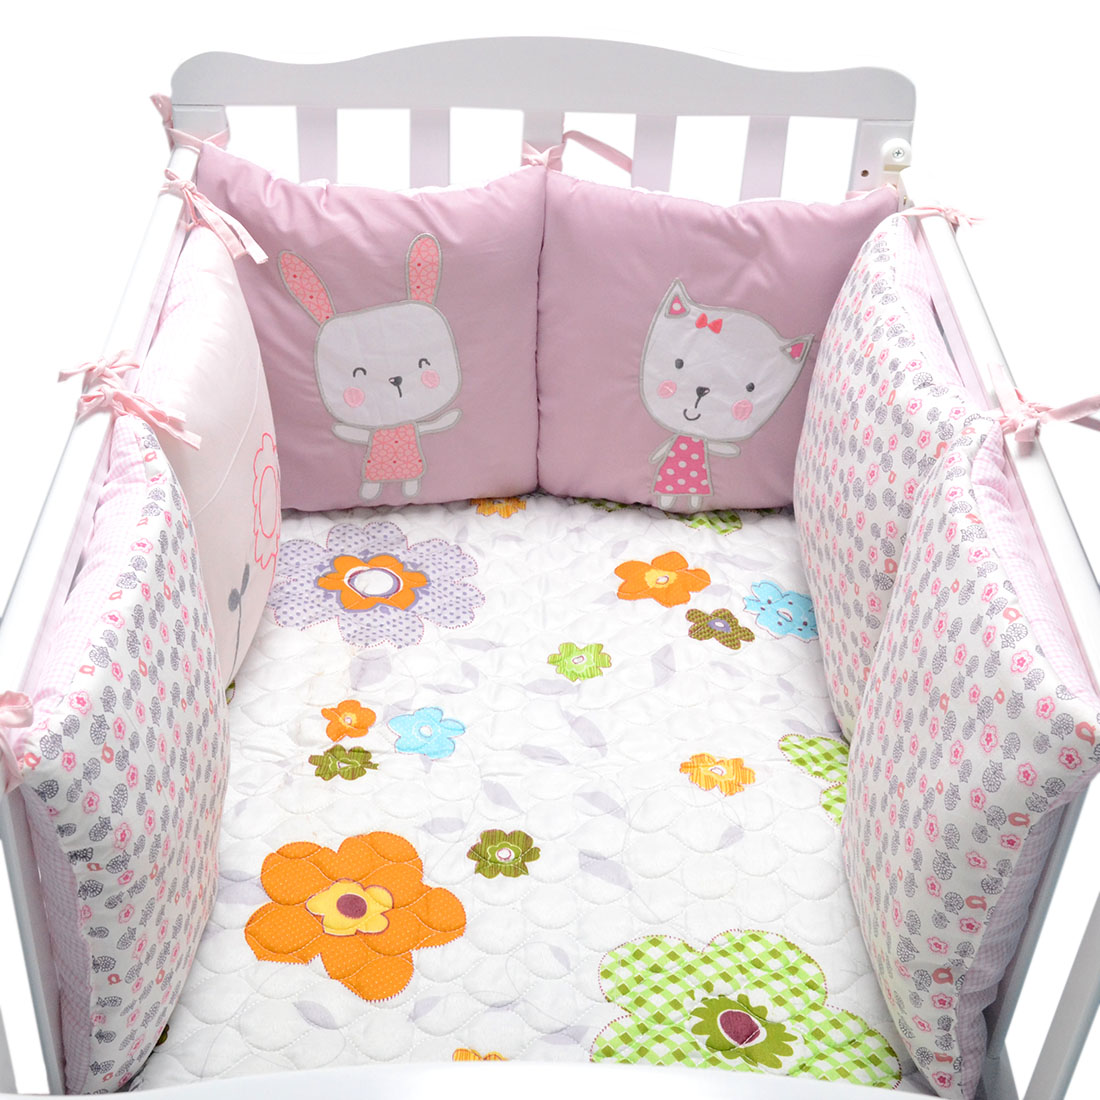 6pcs Baby Bed Bumpers for Newborn Crib Bumper Cotton Baby Bedding Around Protection Back Cushion Pillow Crib Bumpers Bedding